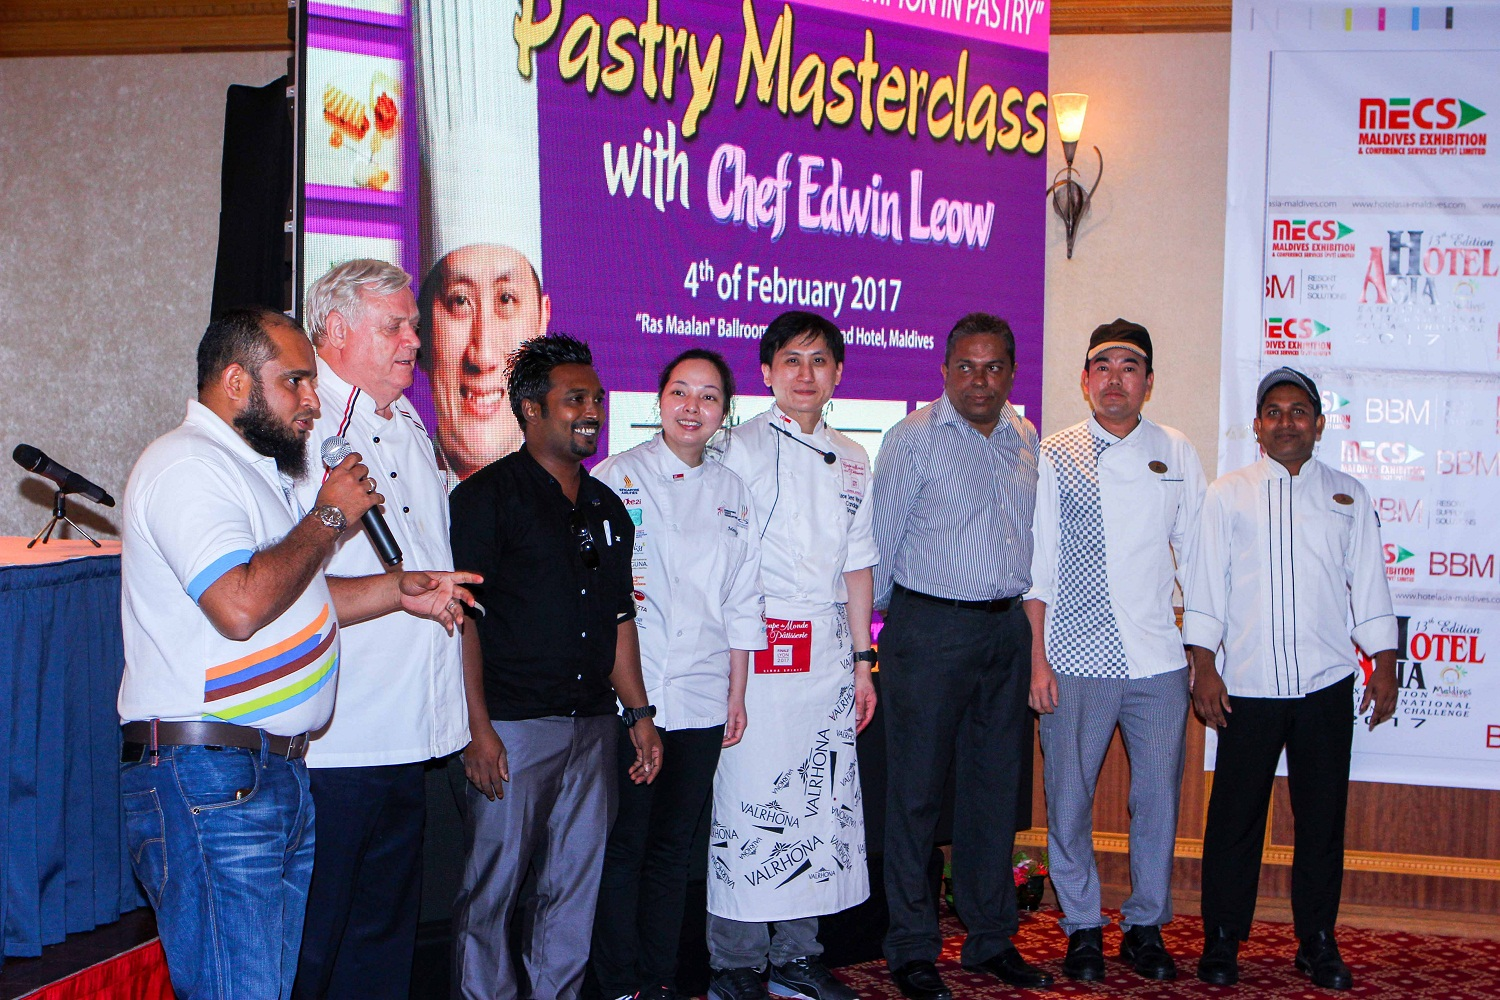 hotel asia culinary challenge 2016 winners to showcase talent in